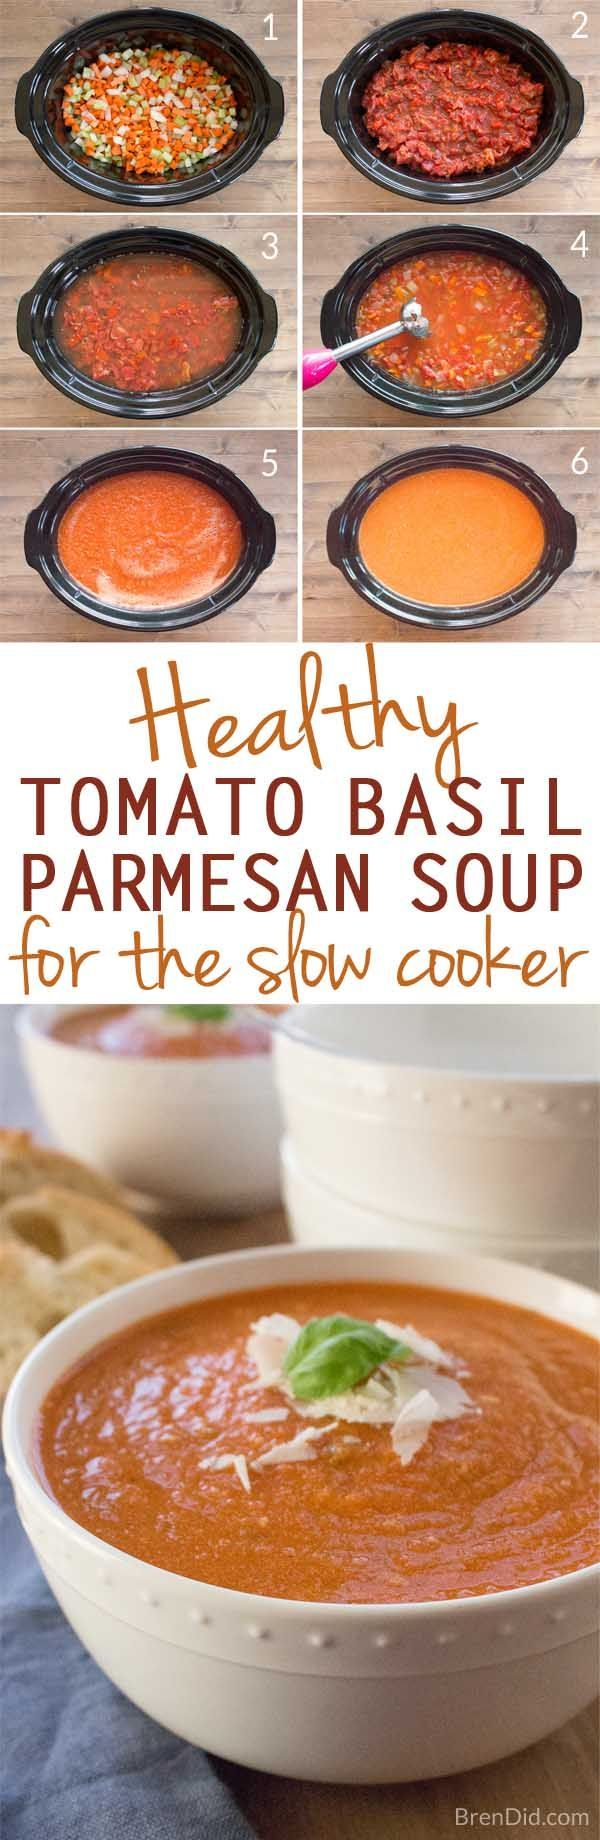 Healthy slow cooker tomato basil parmesan soup is creamy, comforting, and cheesy PLUS it's packed with vegetables that give it incredible flavor without all the fat and calories.